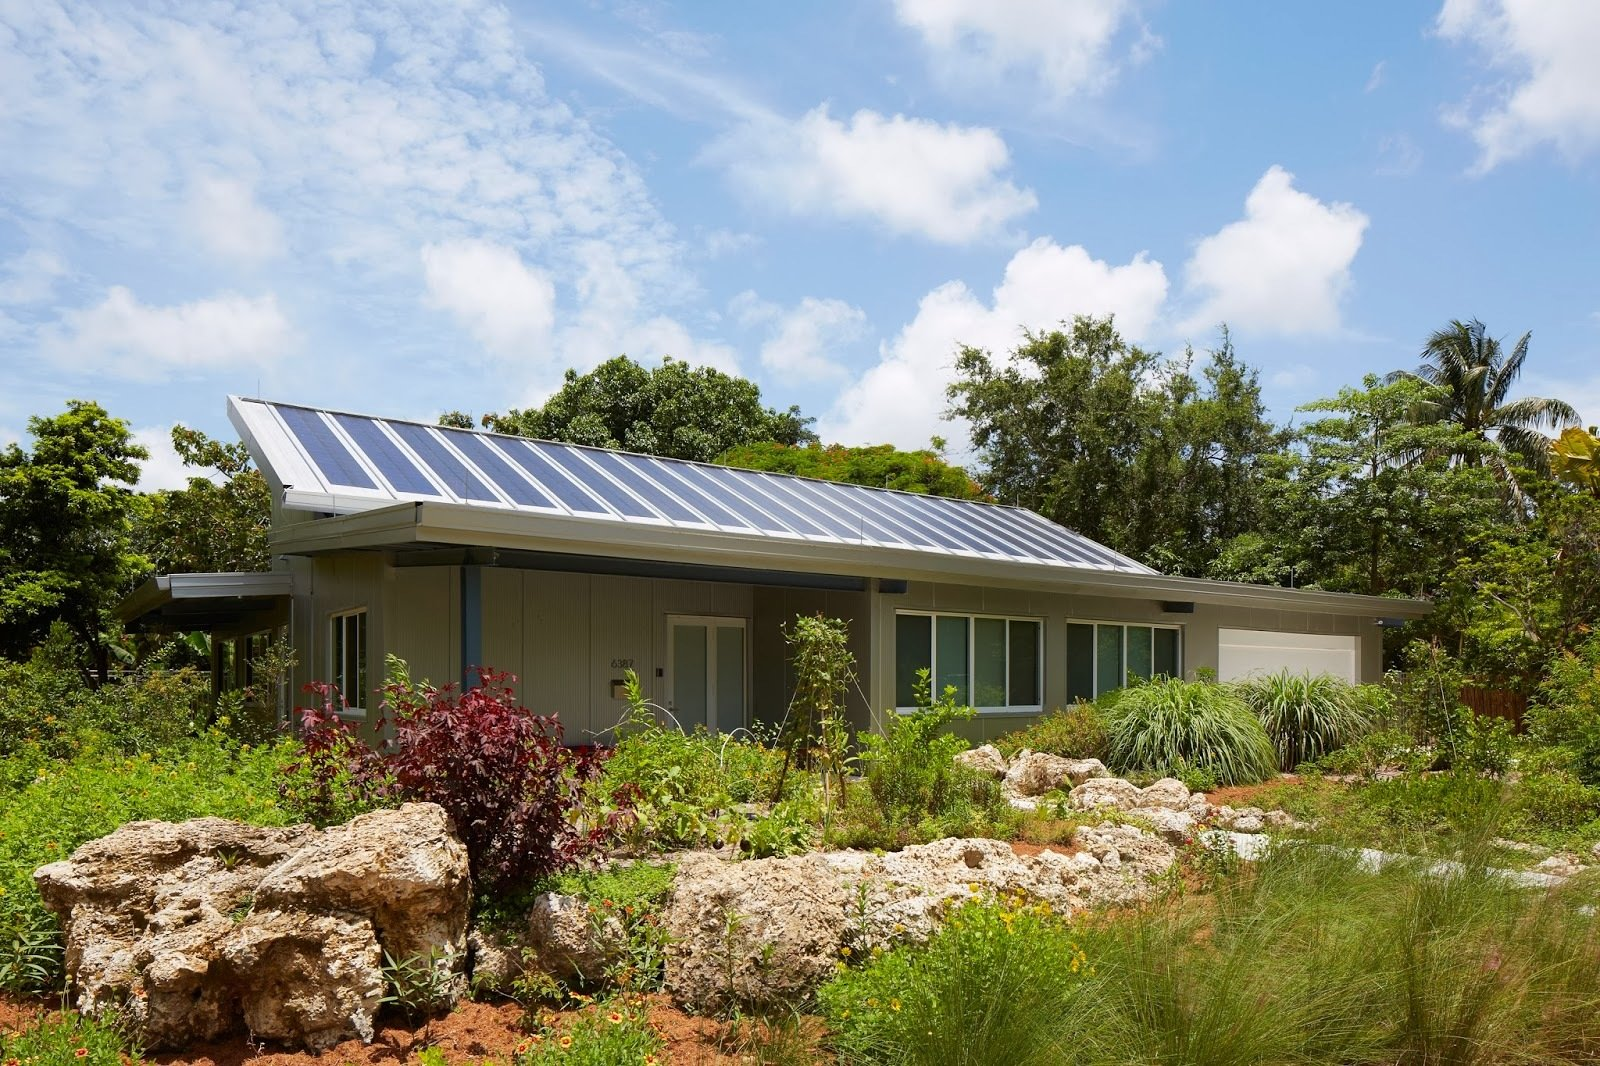 6 Weather-Ready Prefab Homes in Florida